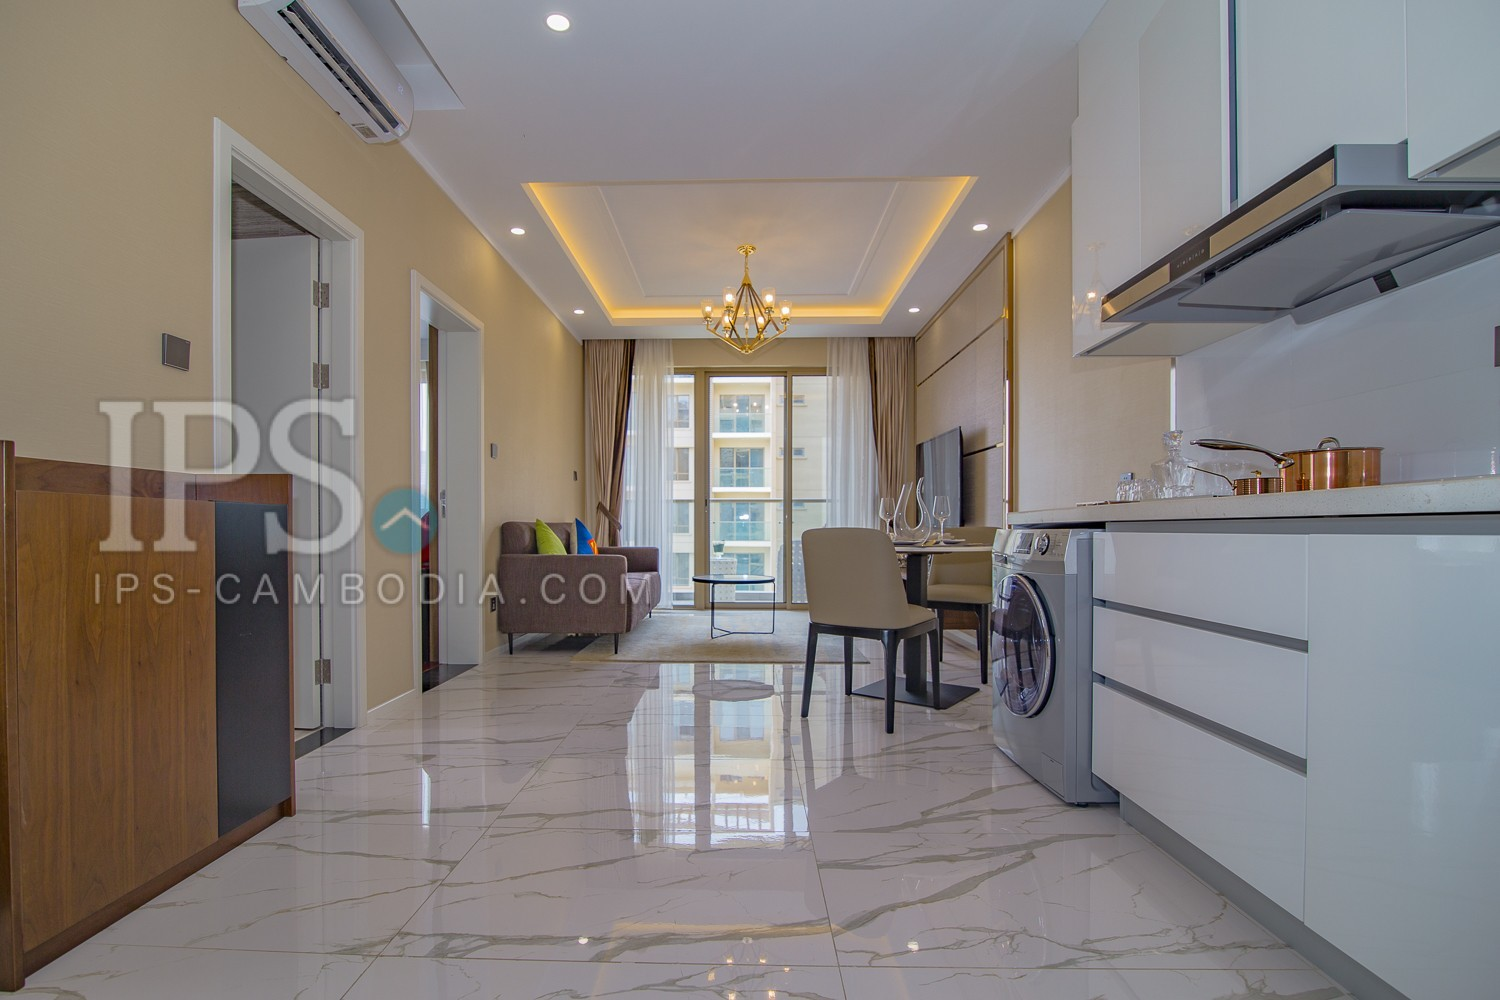 1 Bedroom plus 1 Studyroom Apartment For Rent -  Srah Chork, Phnom Penh